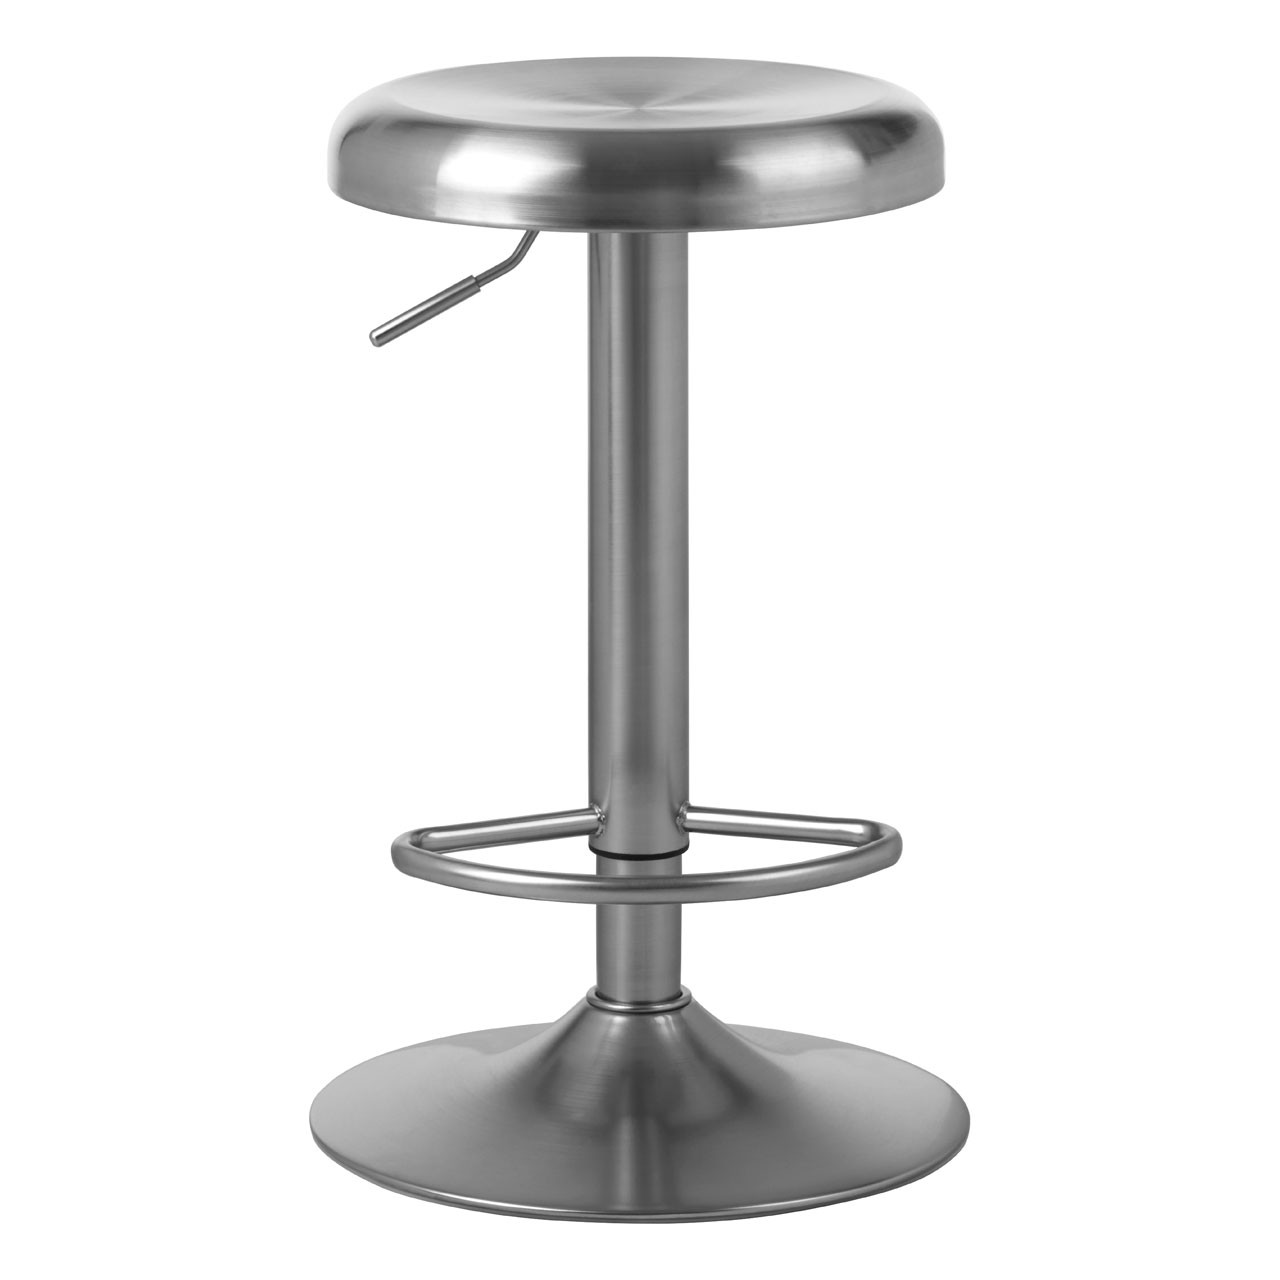 Stockholm Stainless Steel Seat Bar Stool